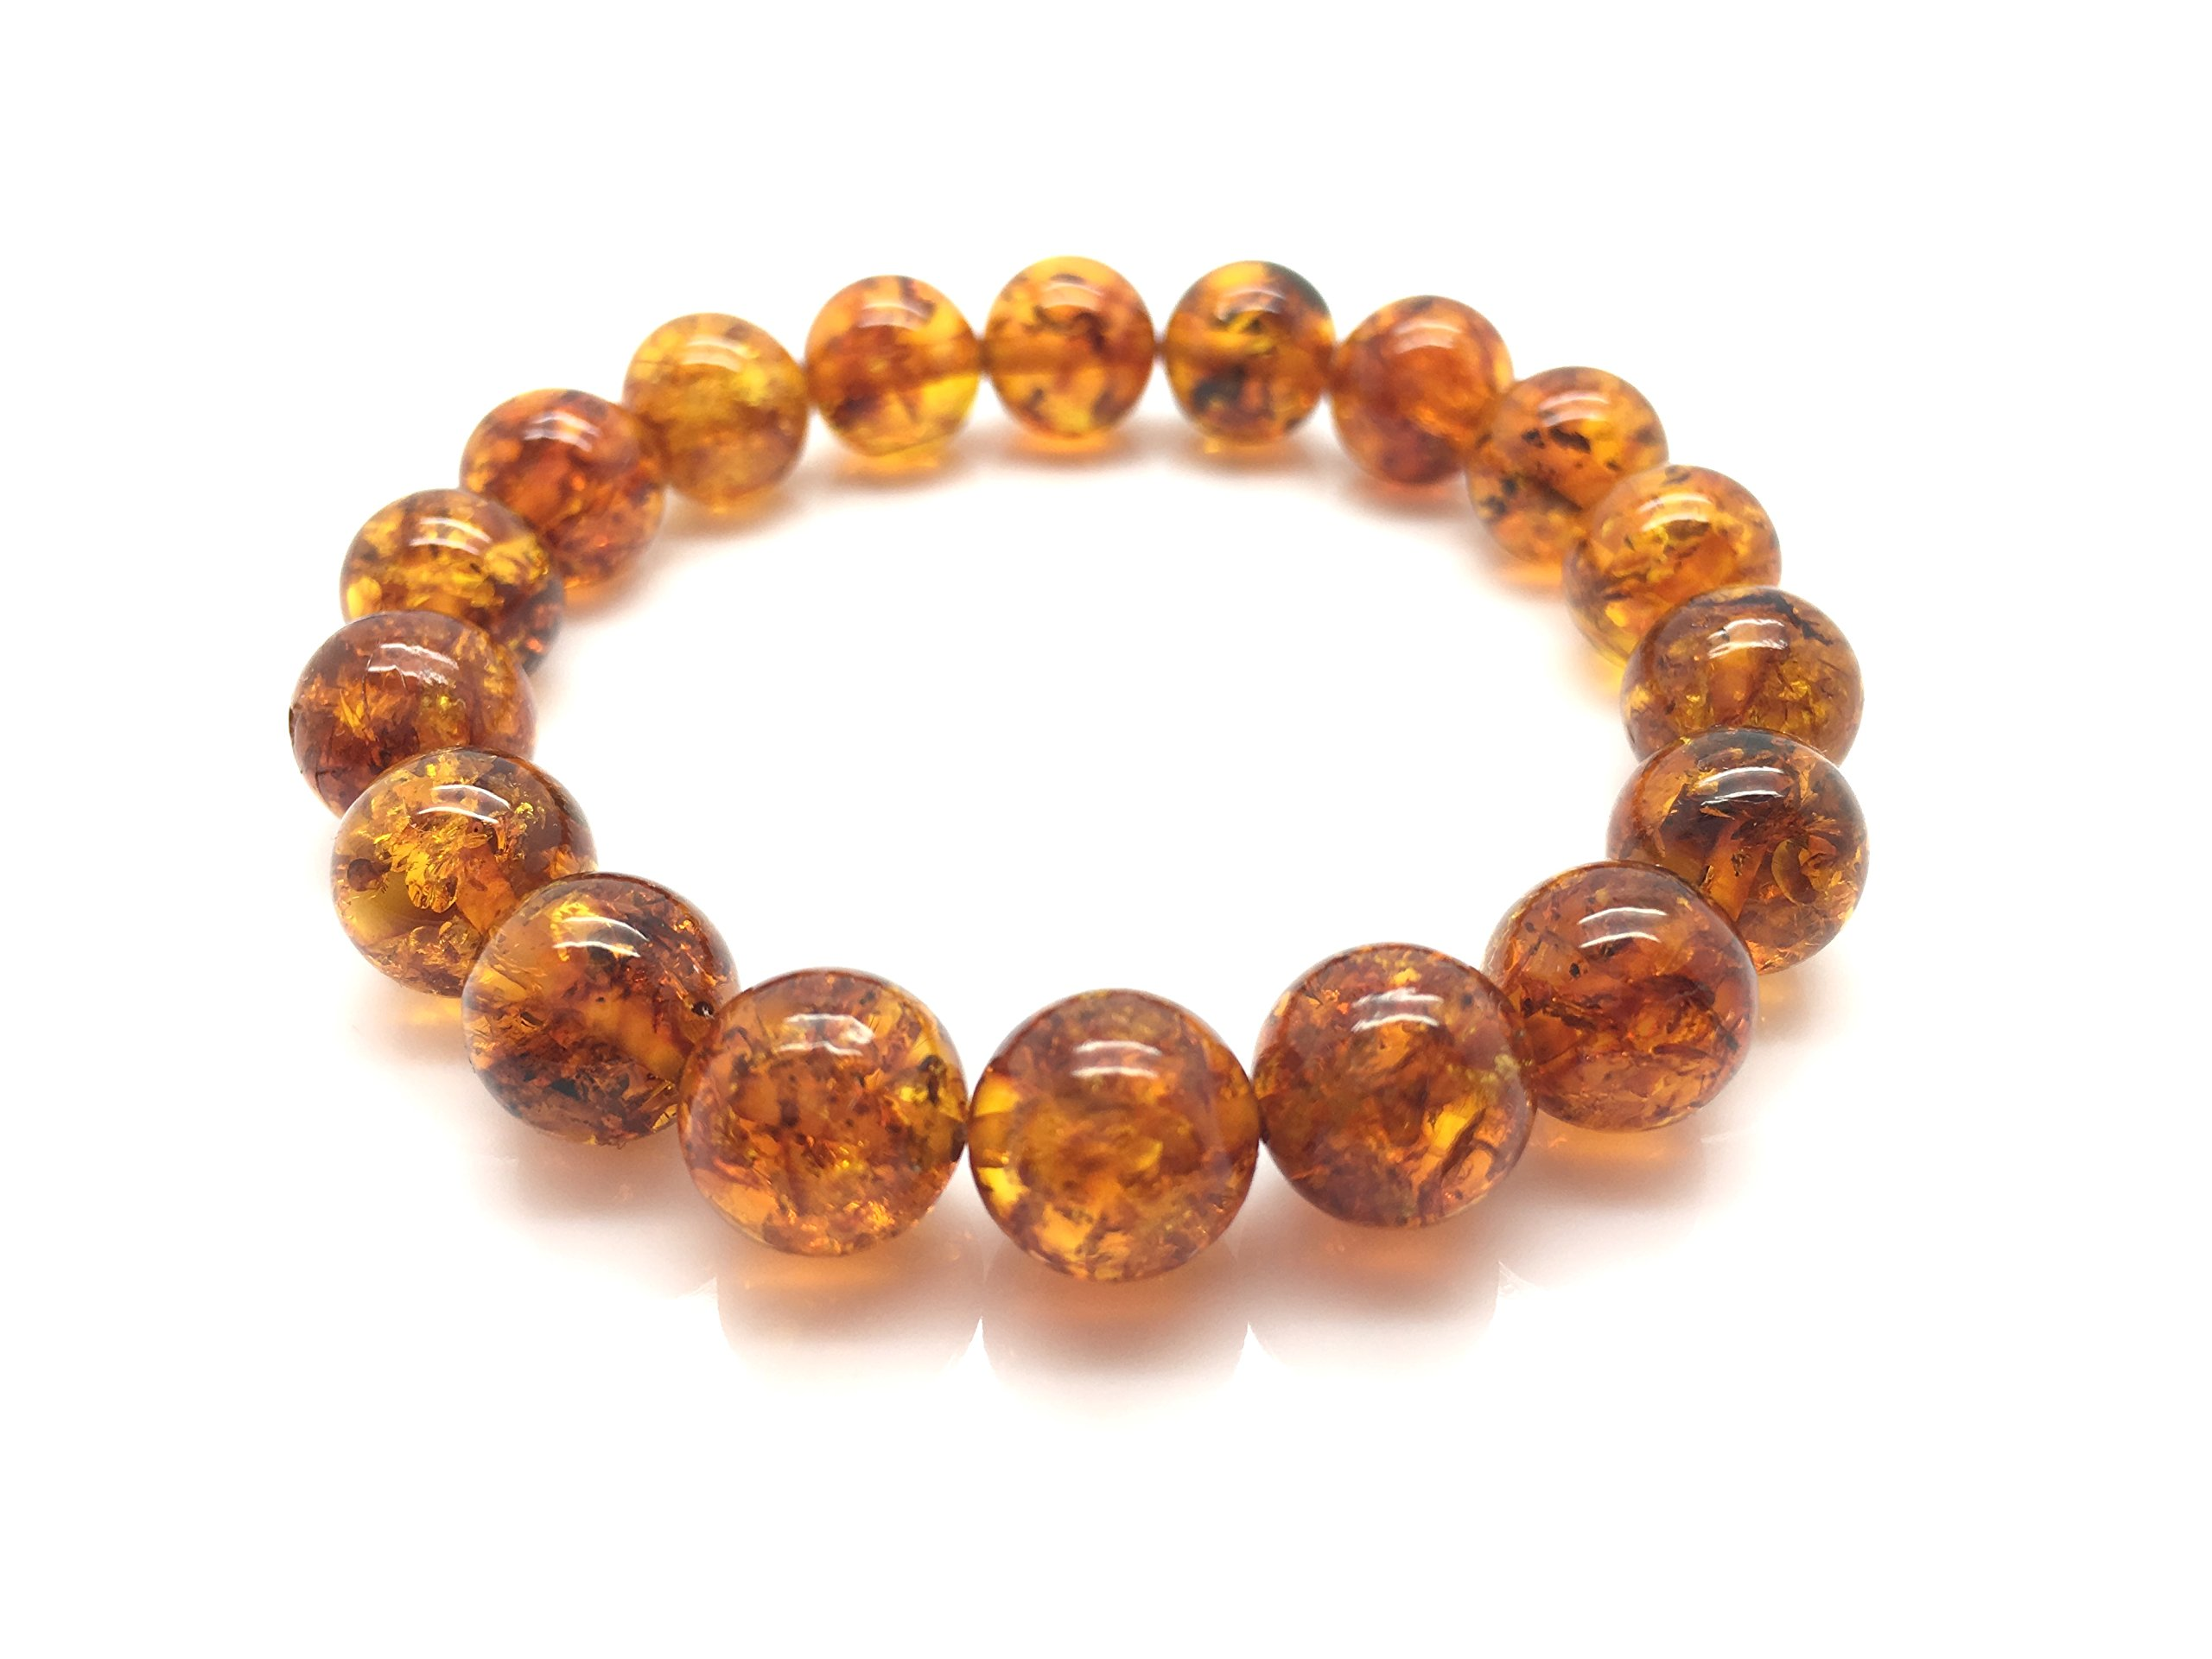 Natural Baltic Amber Bracelet Light Cognac Colour 10,6g 10± mm size.